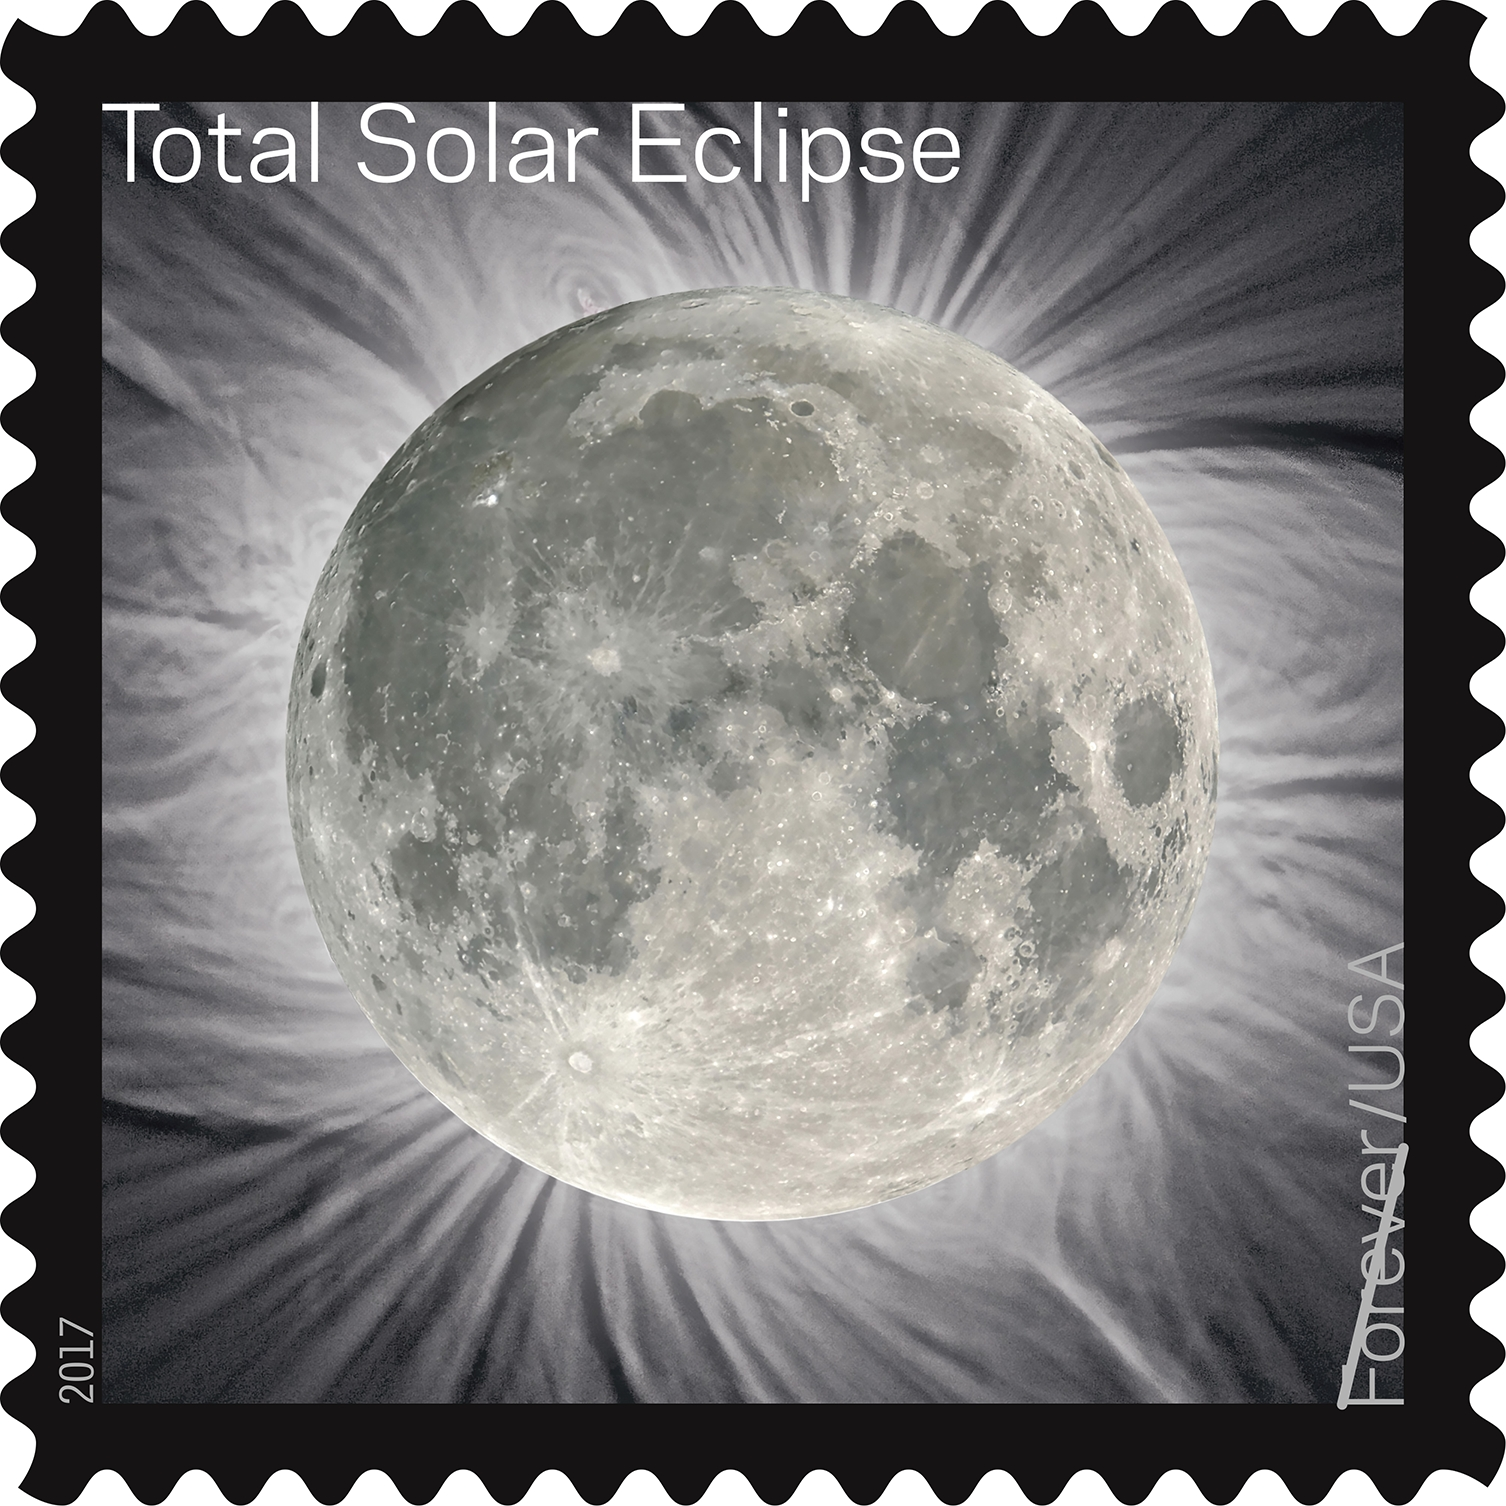 Eclipse stamp. (Photo: courtesy Postal Service)